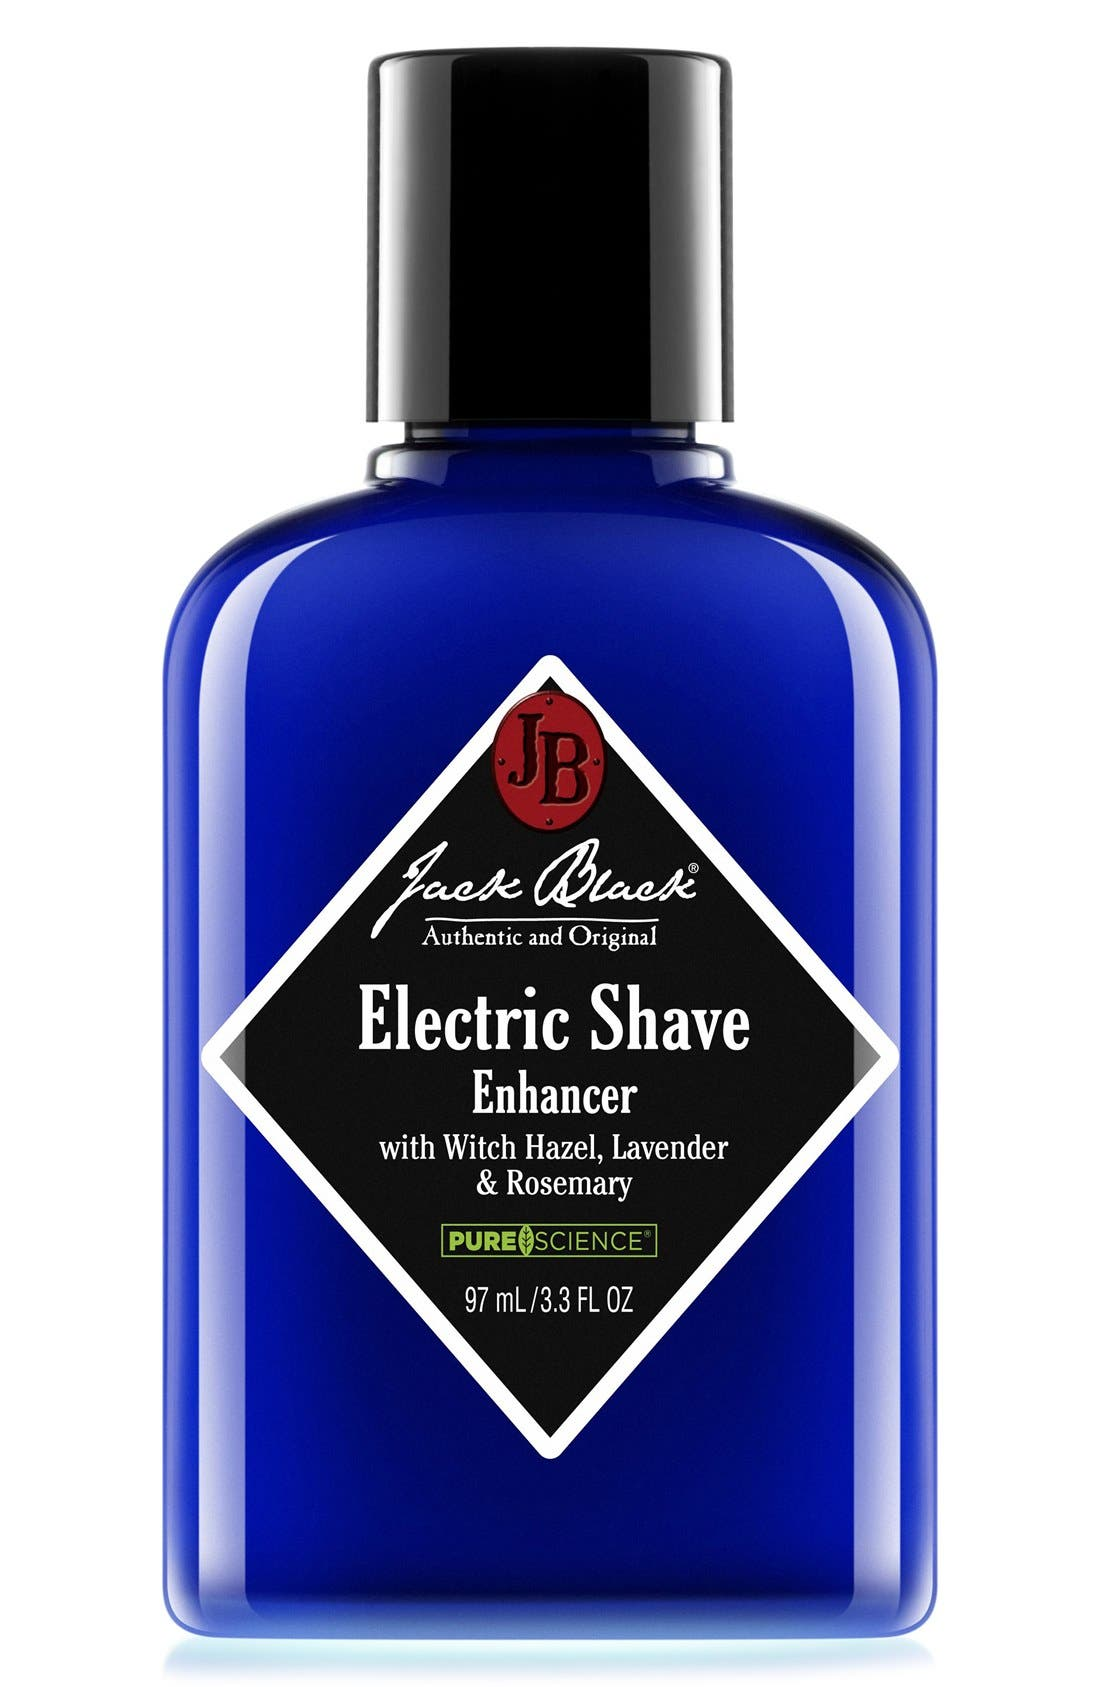 Electric Shave Enhancer with Witch Hazel, Lavender & Rosemary,                             Main thumbnail 1, color,